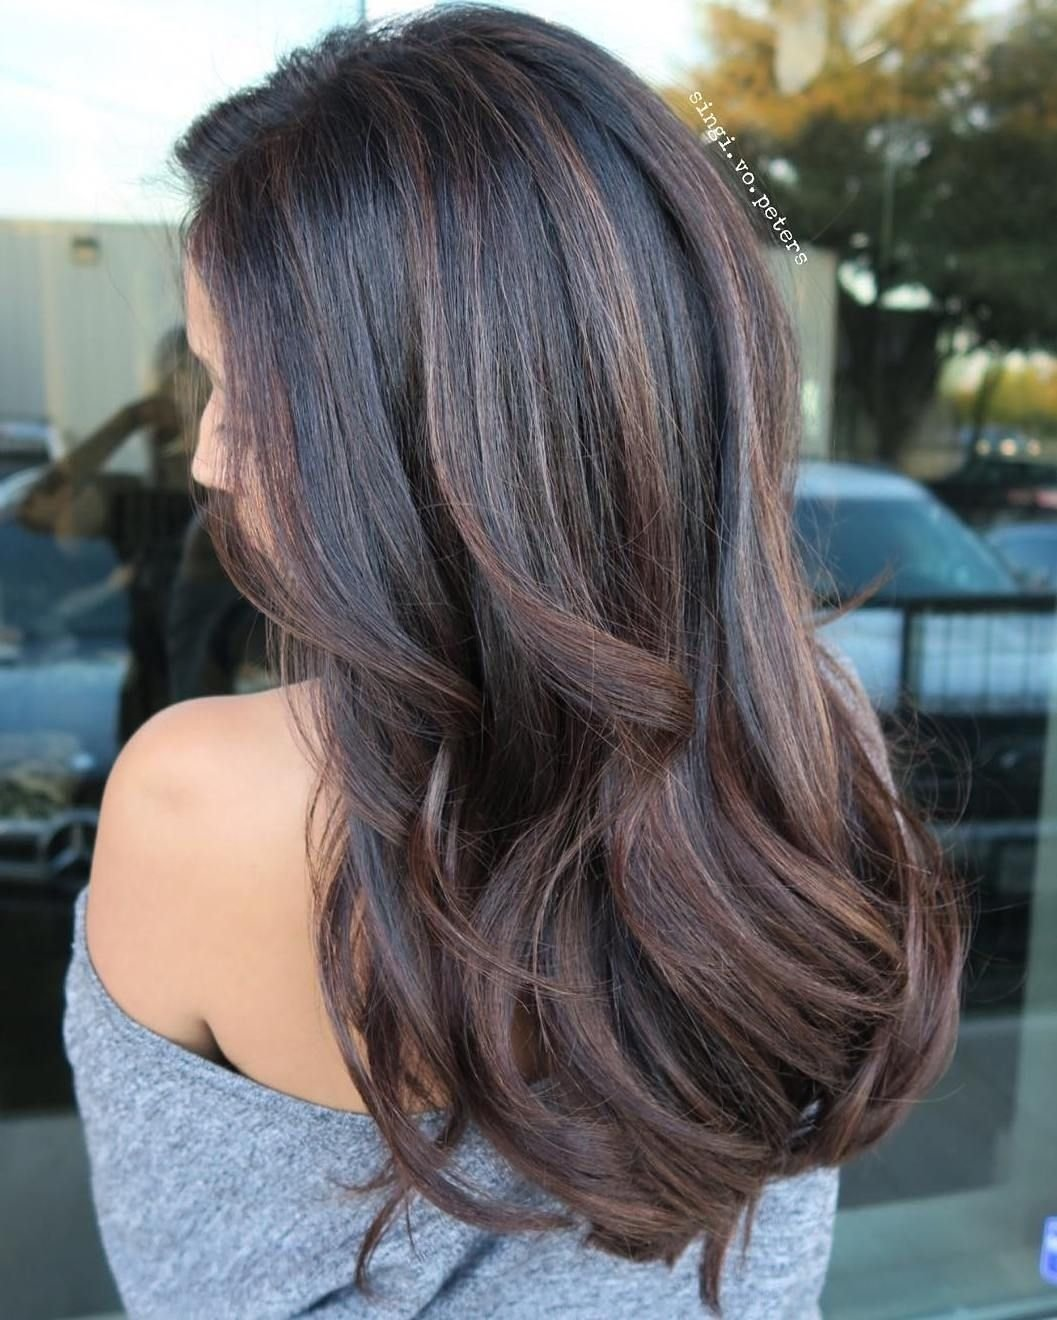 best balayage hair color ideas: 70 flattering styles for 2018